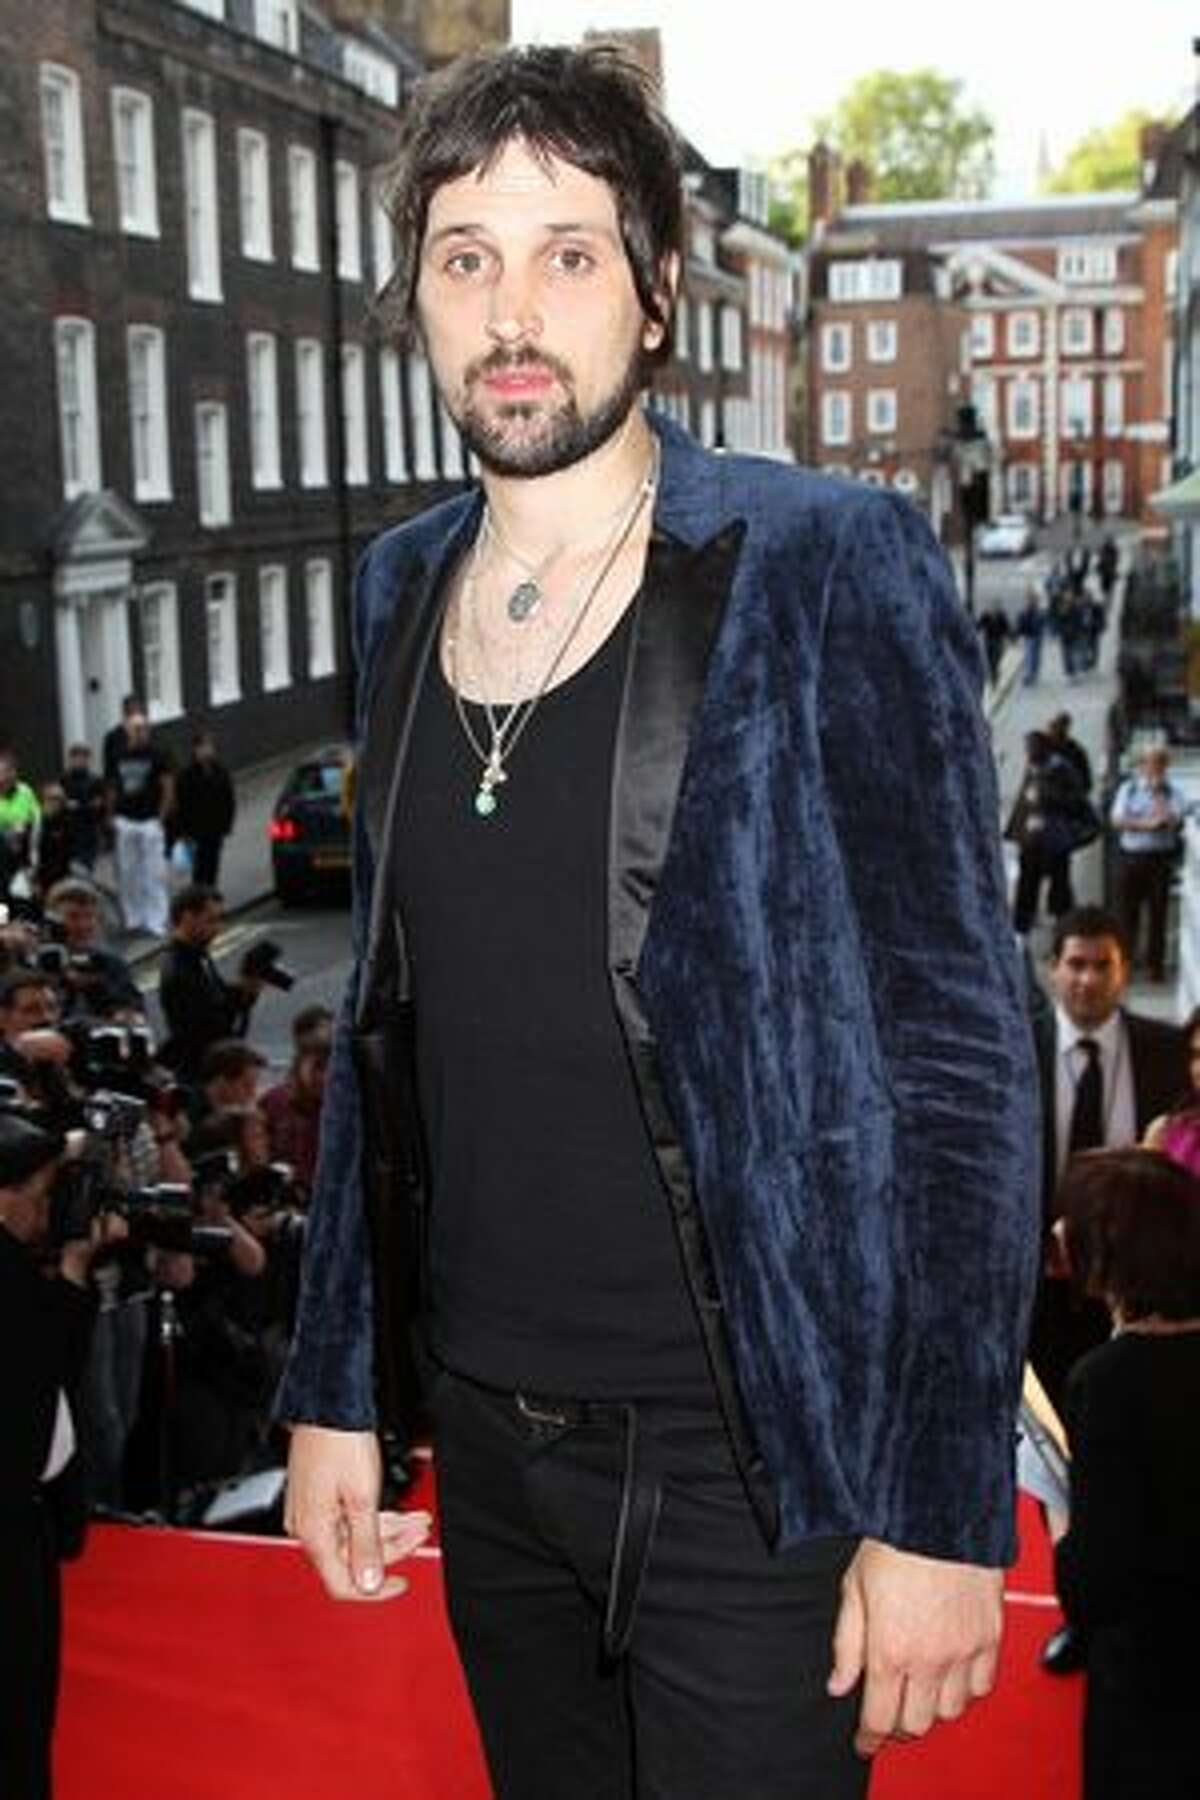 Serge Pizzorno of Kasabian arrives at the Keep A Child Alive Black Ball held at St John's, Smith Square on May 27 in London, England.